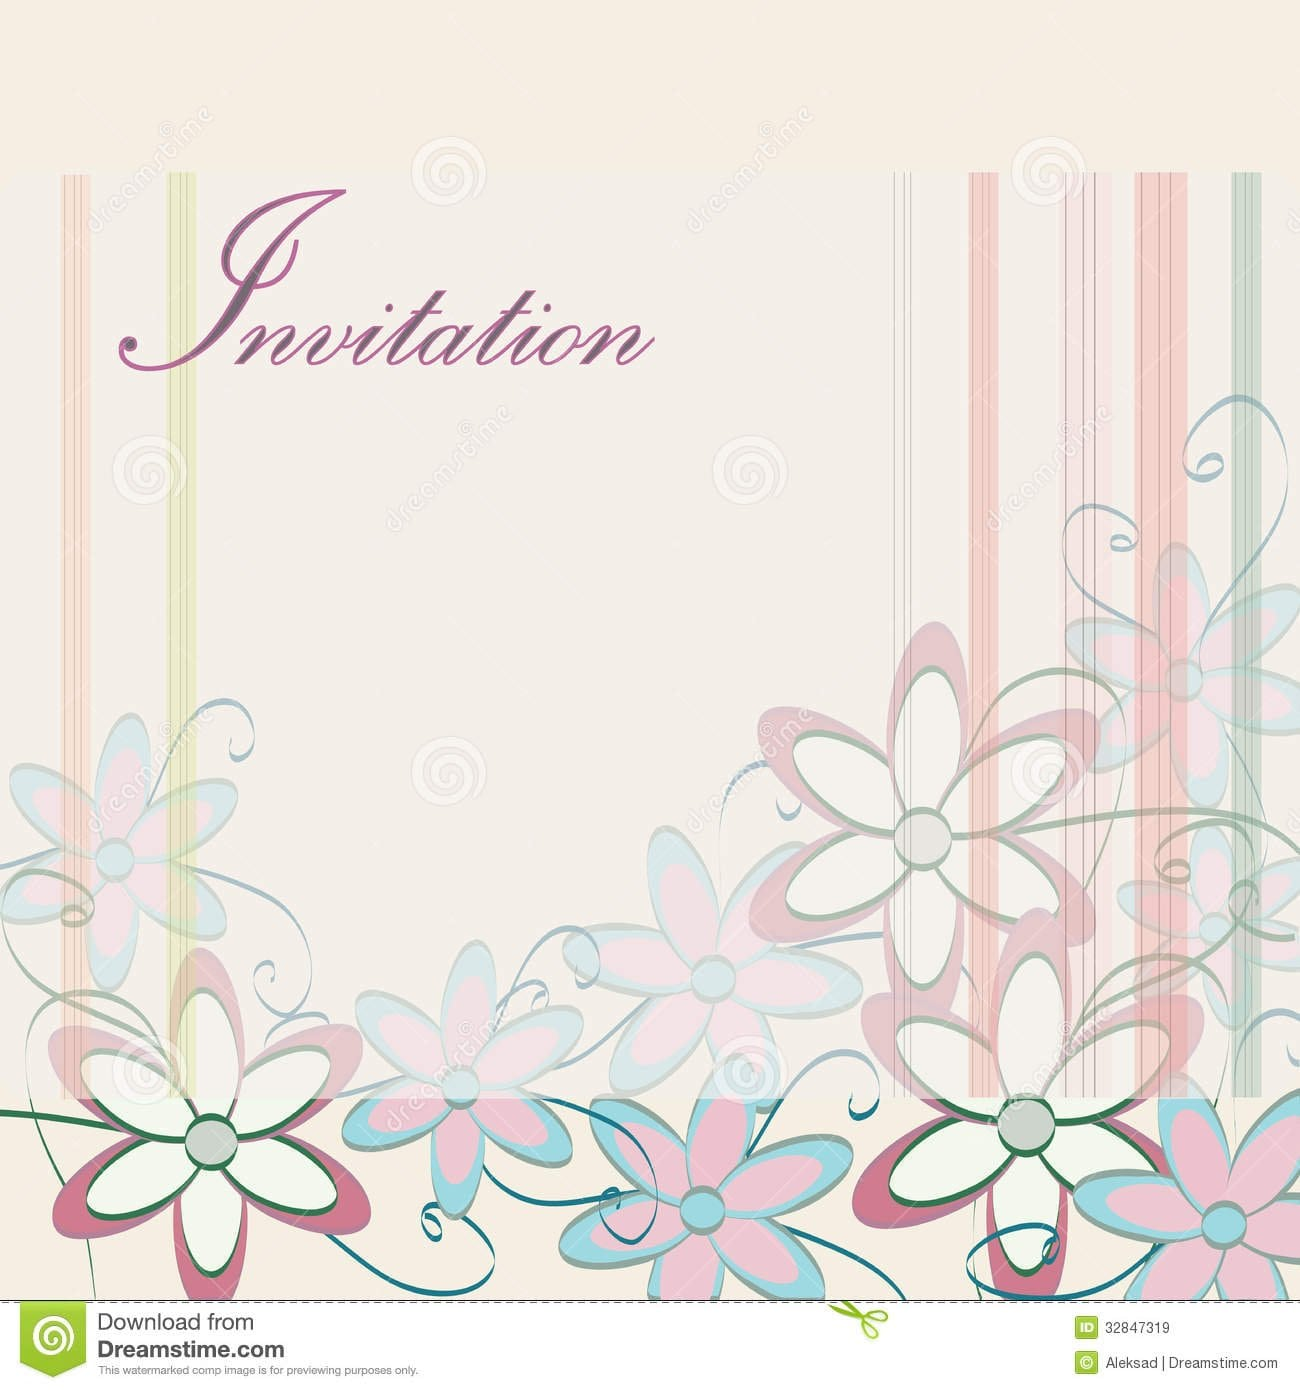 Wedding Invitation Design Online and get inspiration to create nice invitation ideas